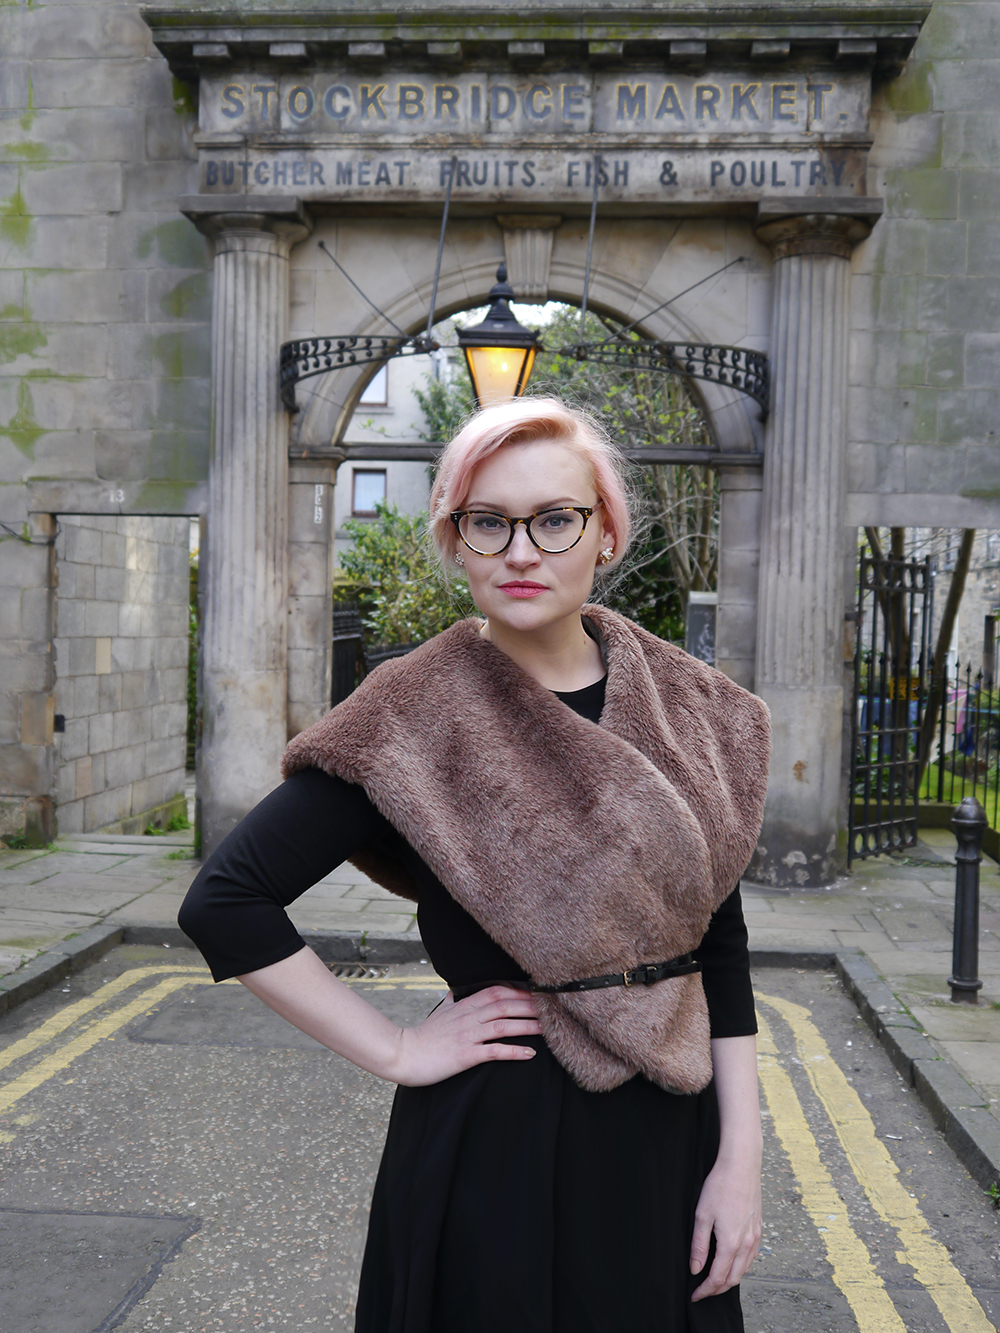 limited edition Chouchou Hollywood hood, #HOODSTYLIN, #HOODGIRLS, Dione Bowlt ceramic earrings, Stockbridge best streets, Edinburgh street style, Stockbridge Market archway, retro style in Scotland, natural light blog photography, candyfloss hair DIY,